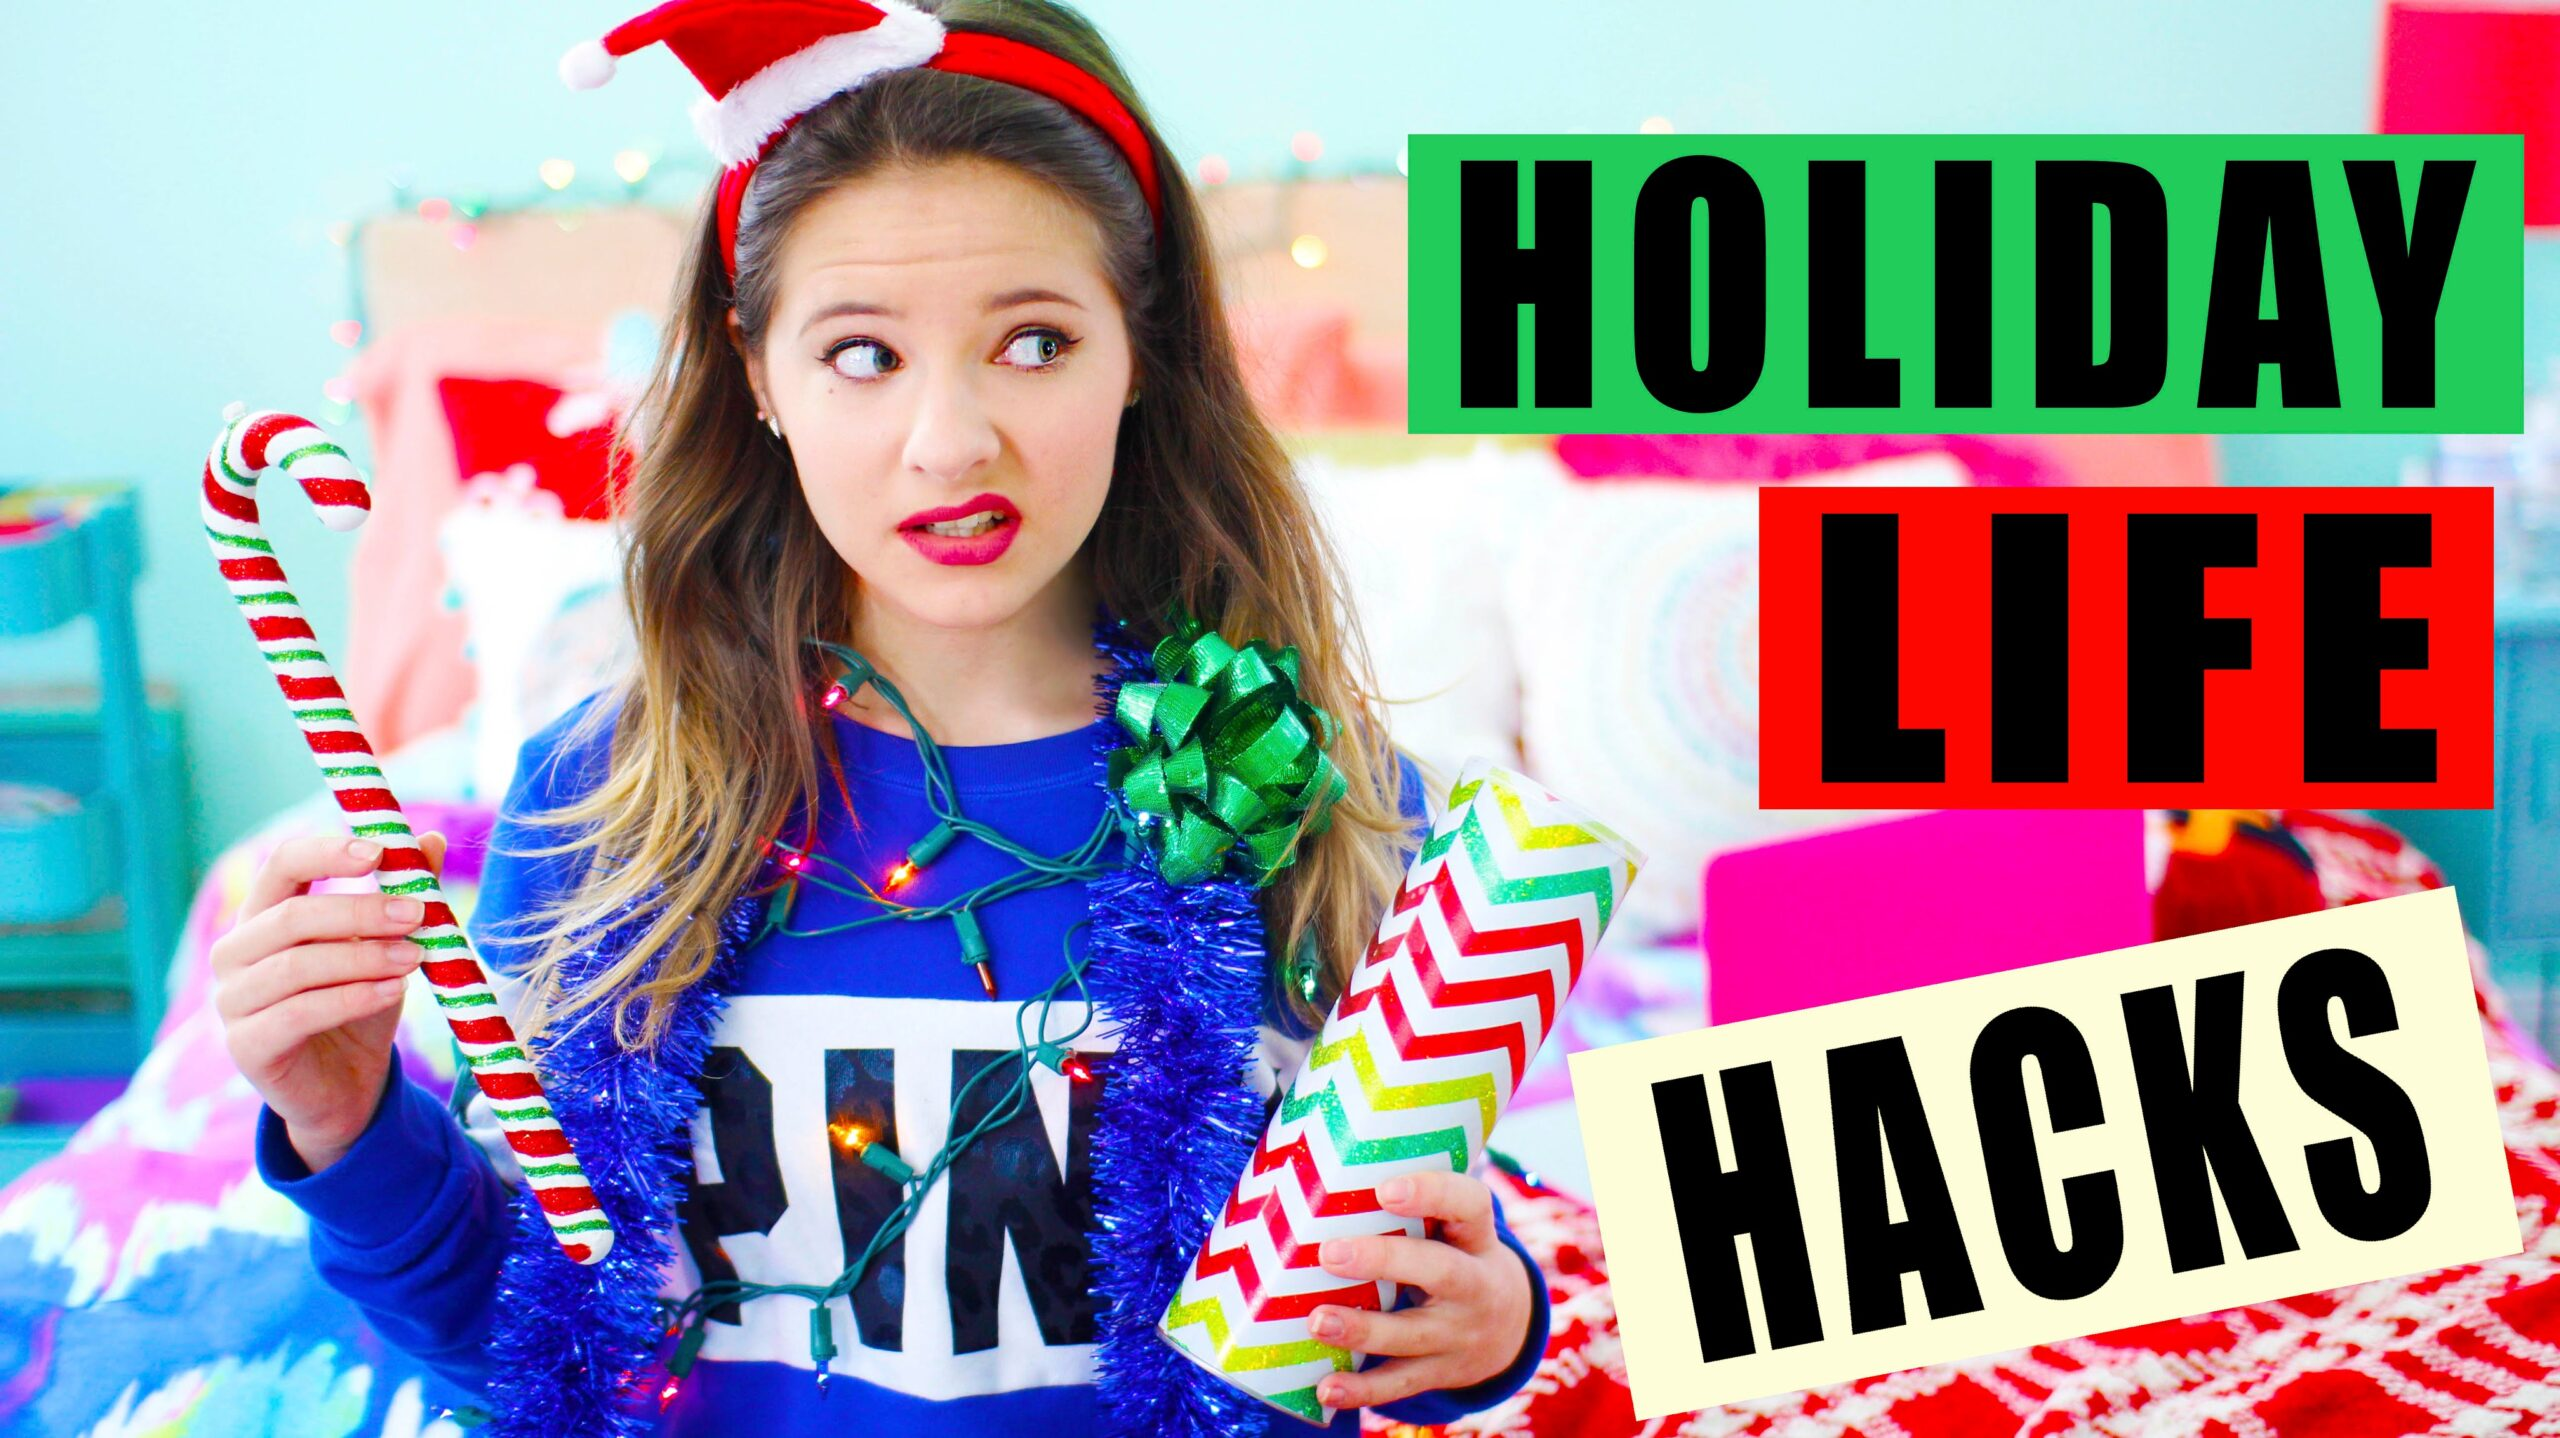 6 Holiday Life Hacks!